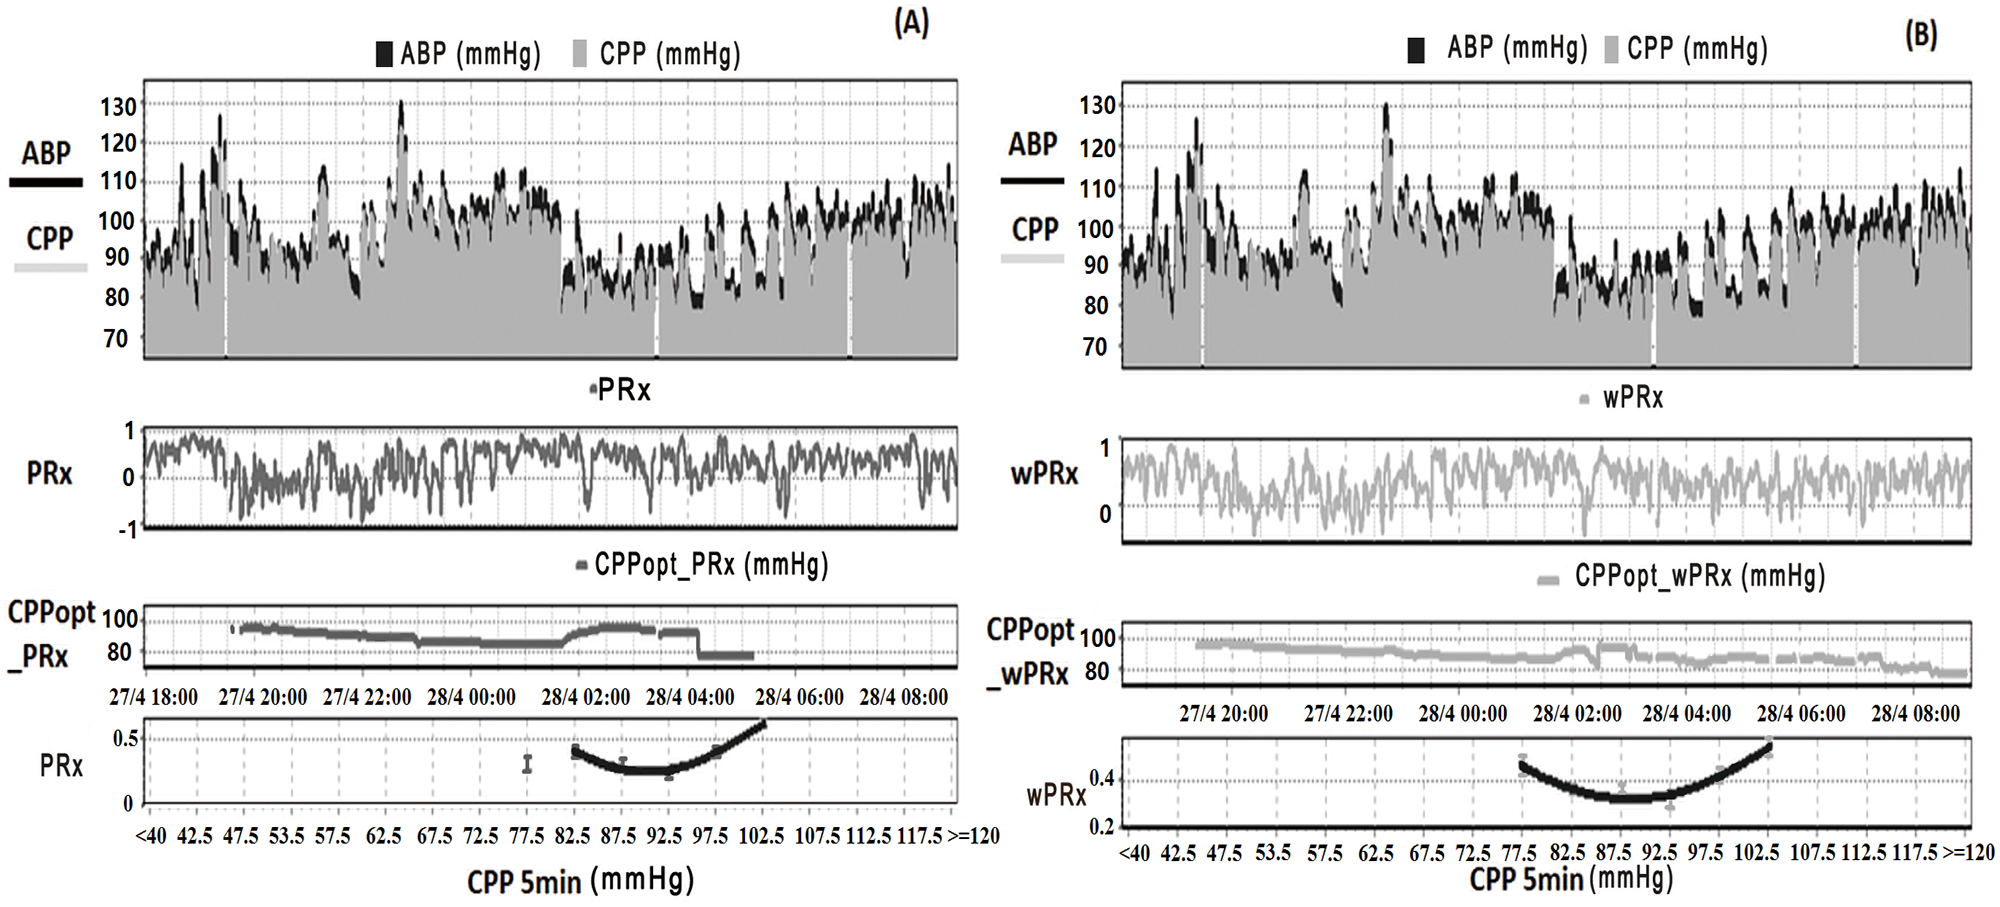 Example of data analysis using ICM+, showing time trends of arterial blood pressure (ABP), cerebral perfusion pressure (CPP), cerebral autoregulation (CA), and optimal CPP (CPPopt).